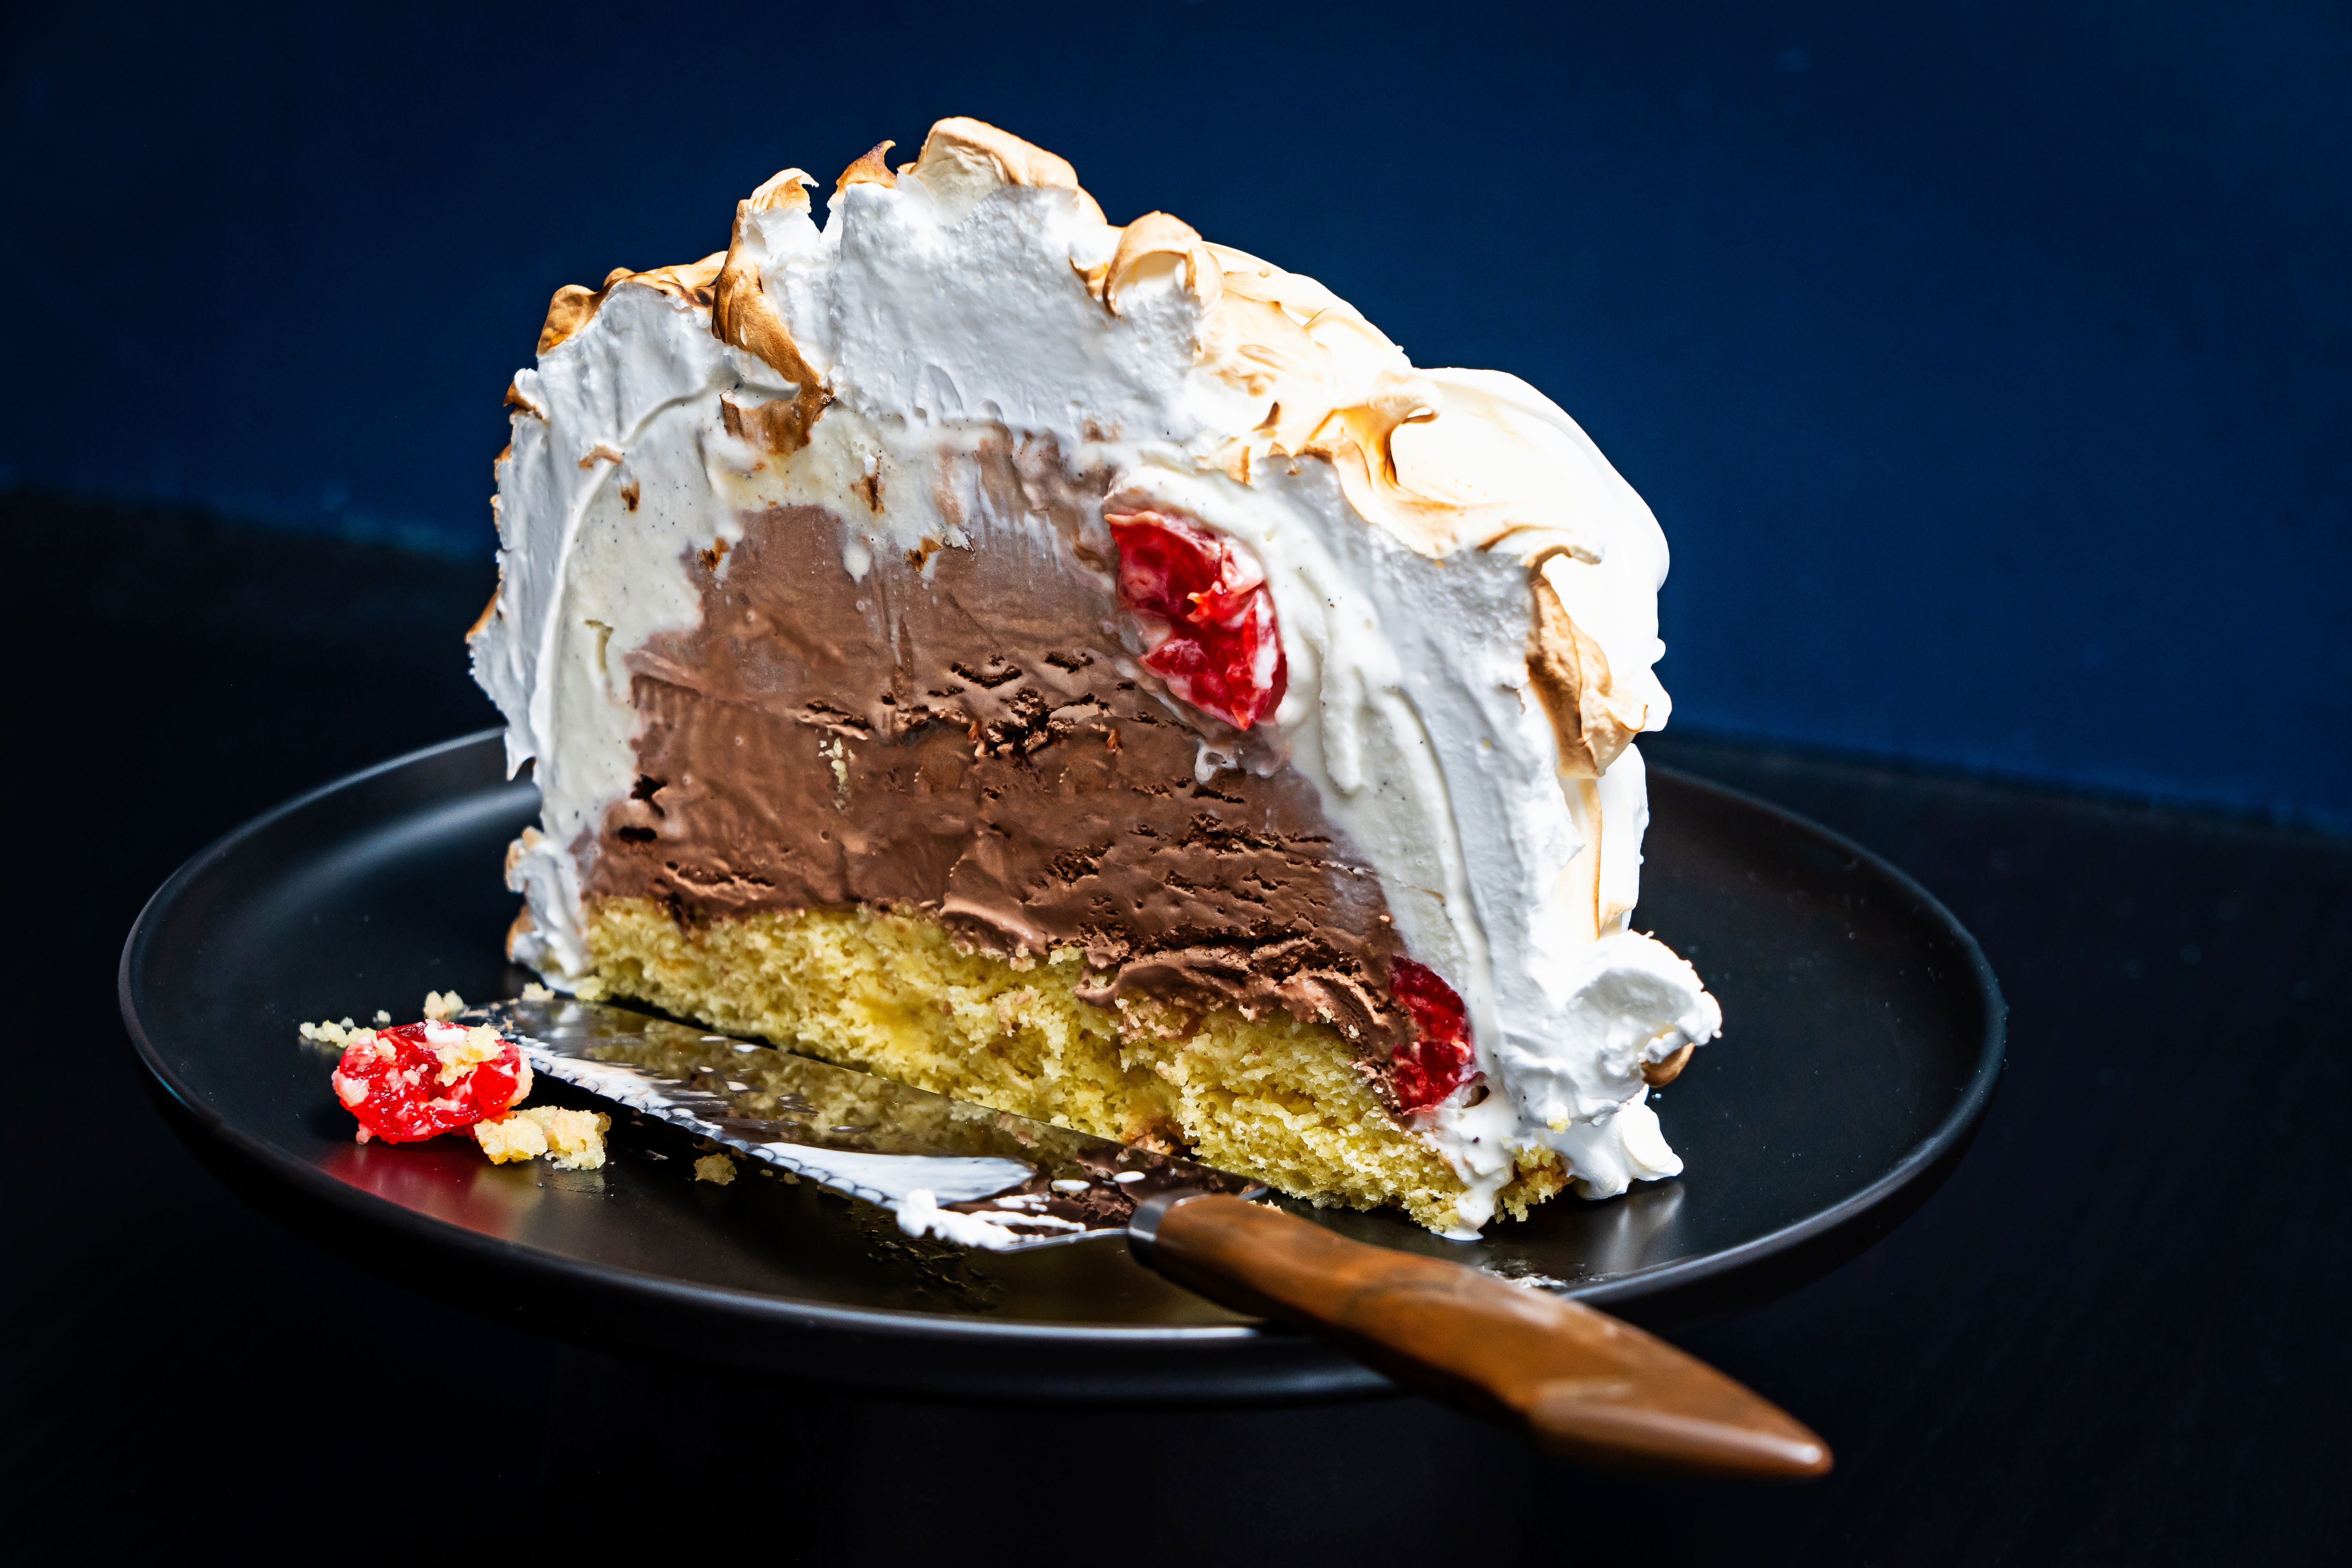 An Easy Baked Alaska Dessert Recipe To Send Off The New Year The Washington Post